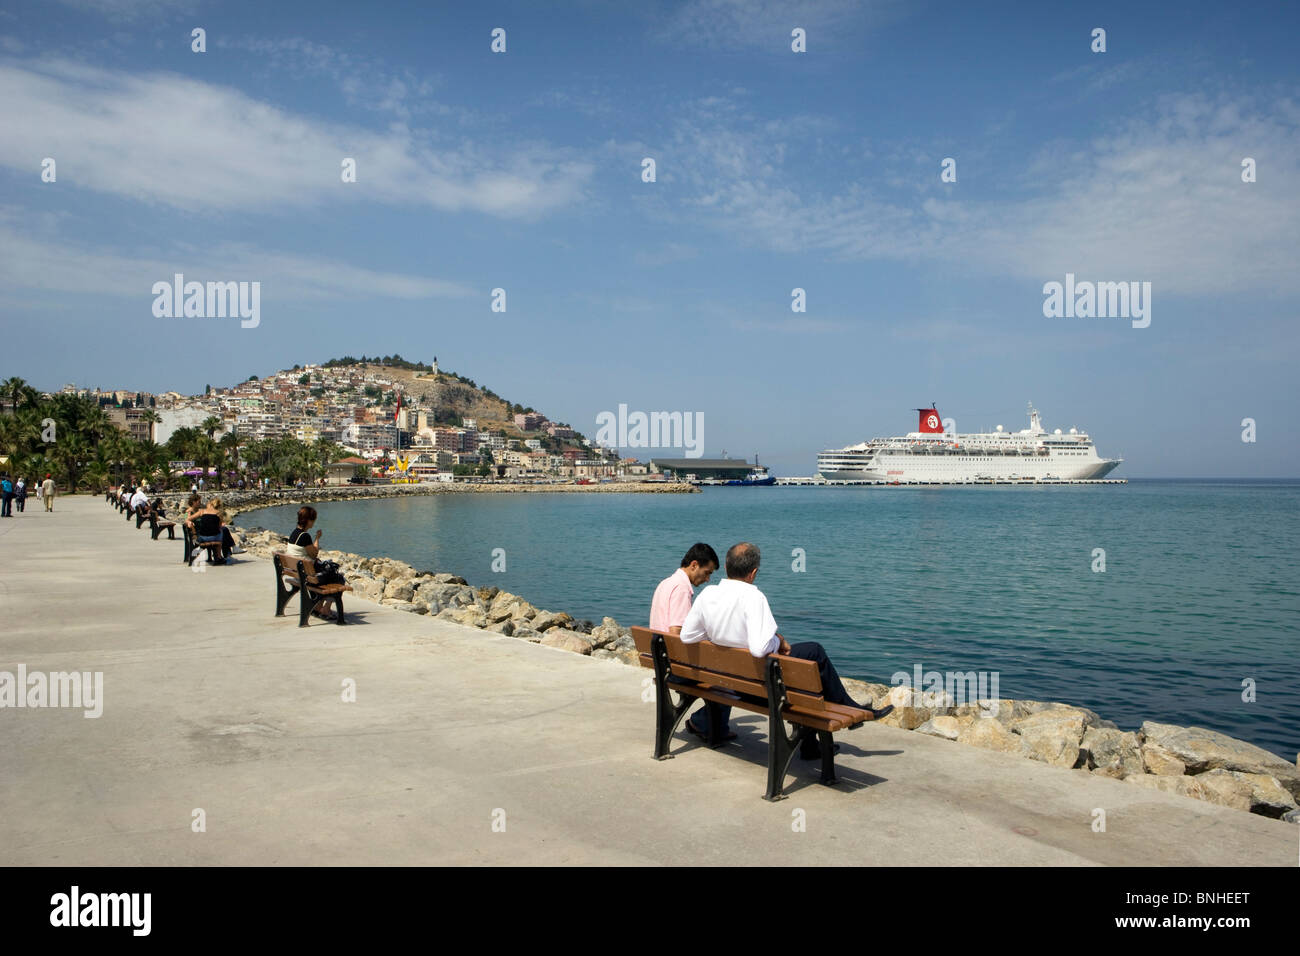 Turkey June 2008 Kusadasi city Mediterranean Sea coast ship promenade - Stock Image